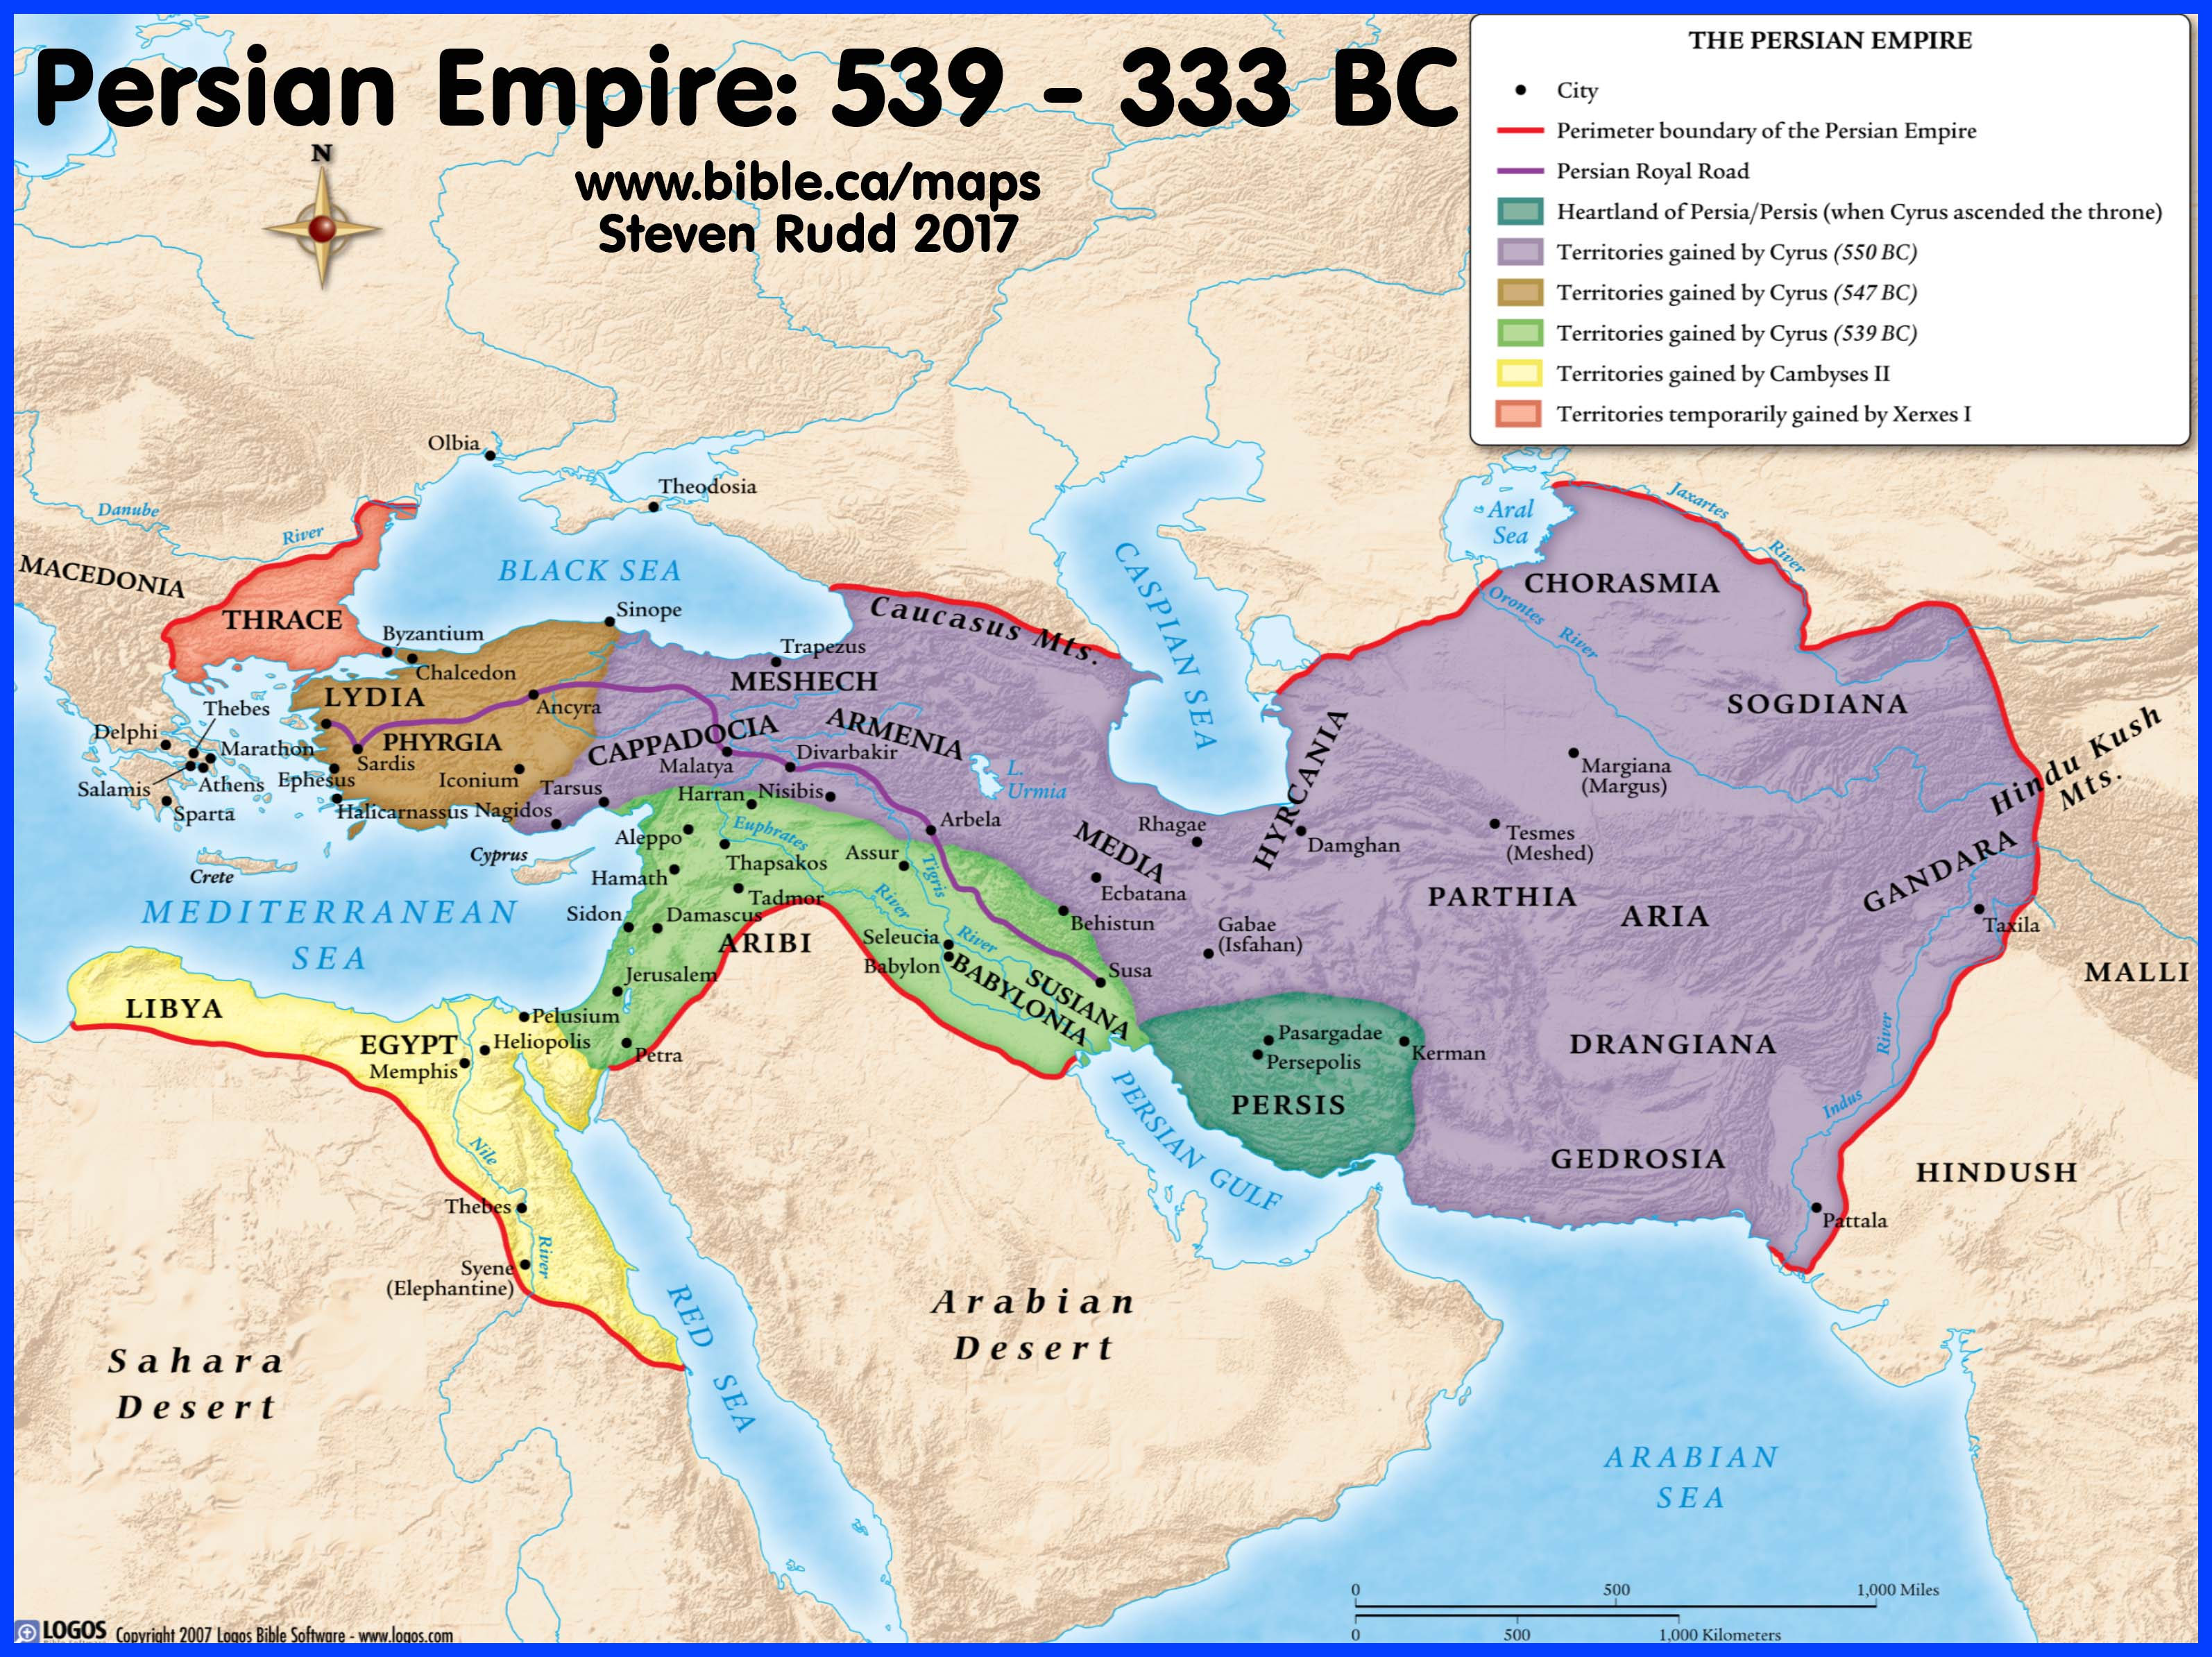 Bible Maps: Successive World Kingdoms: Persia, Babylon, Assyria